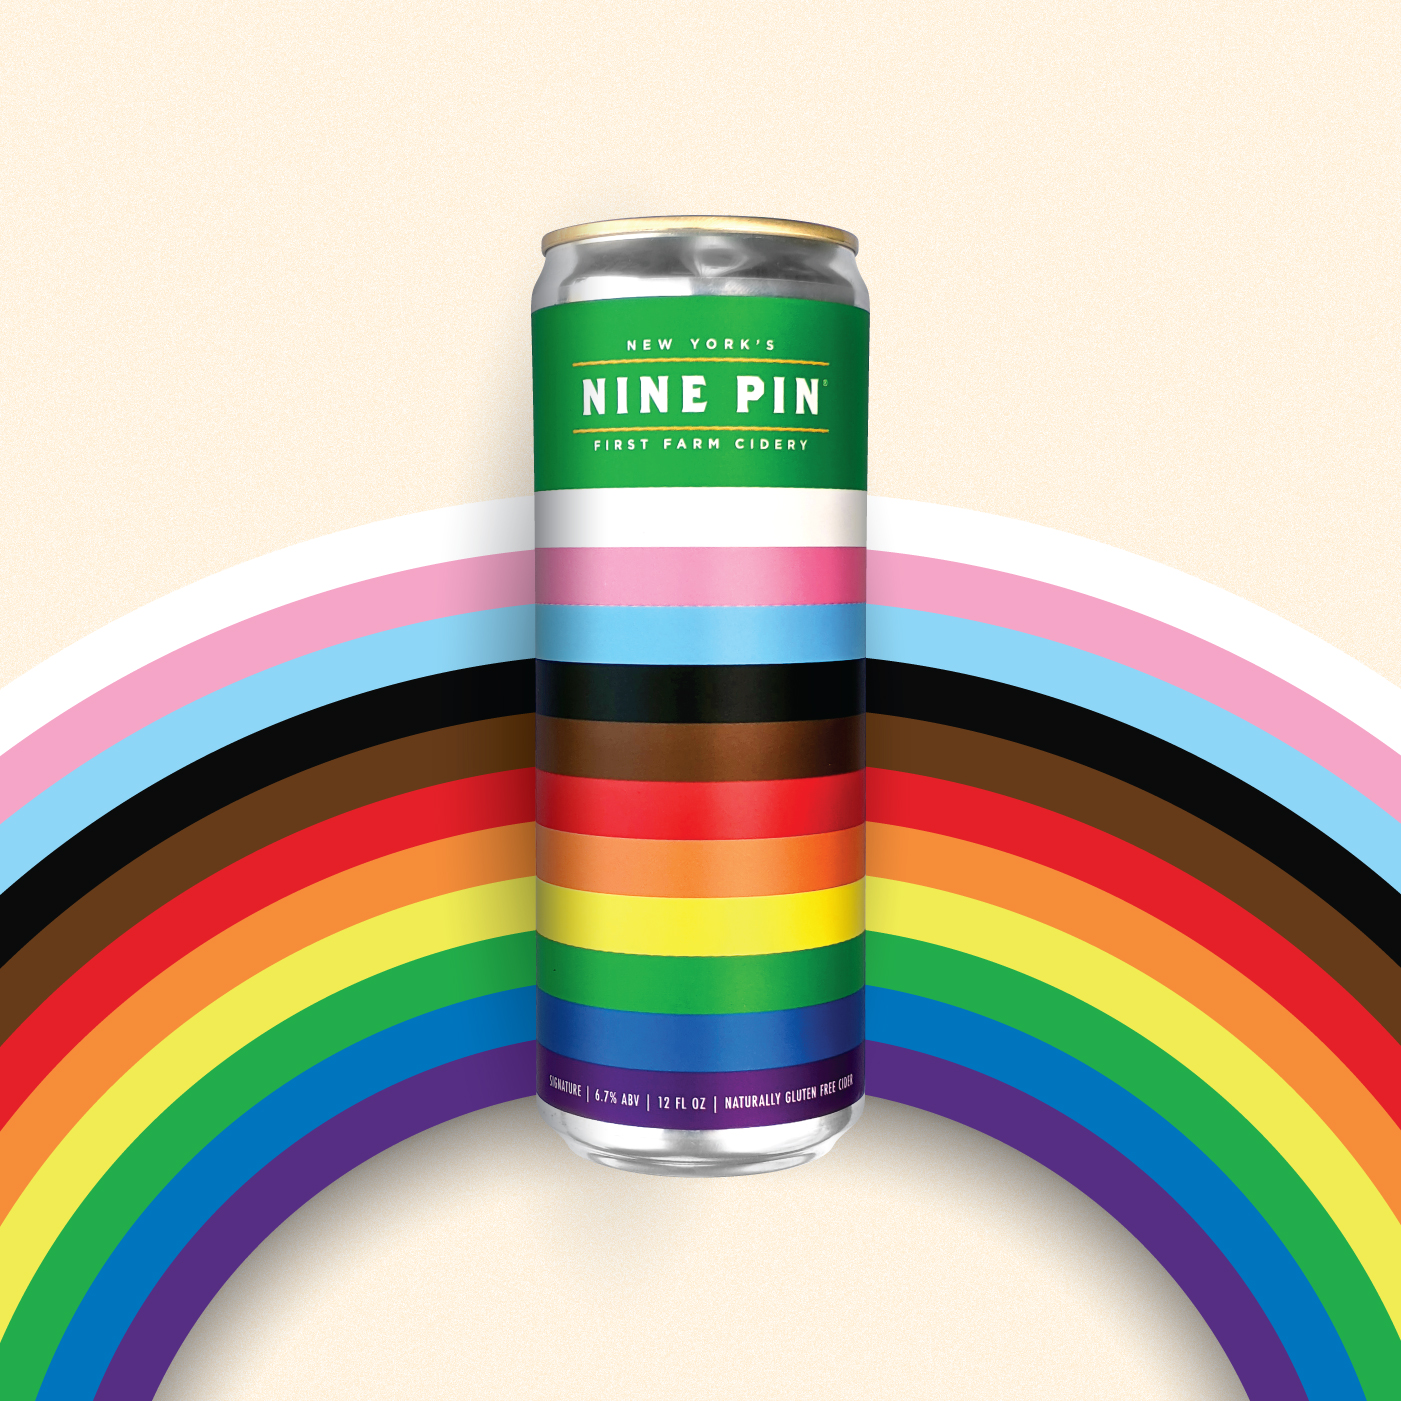 Image of rainbow. Inside rainbow is a rainbow colored can that reads Nine Pin